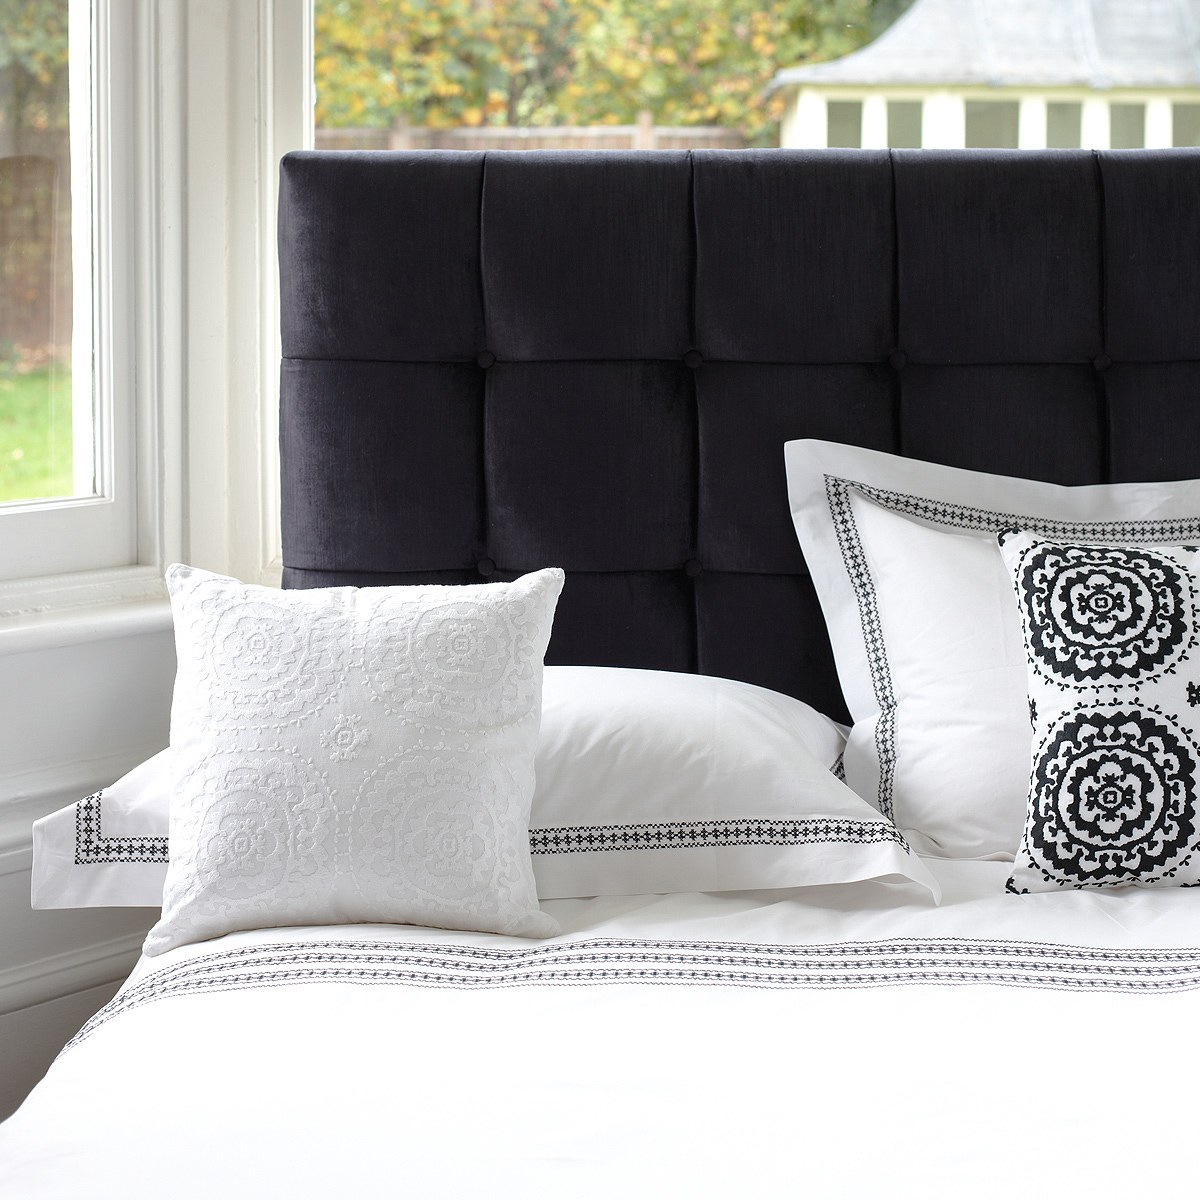 Luxury Bed Linen, Sheets And Pillowcases